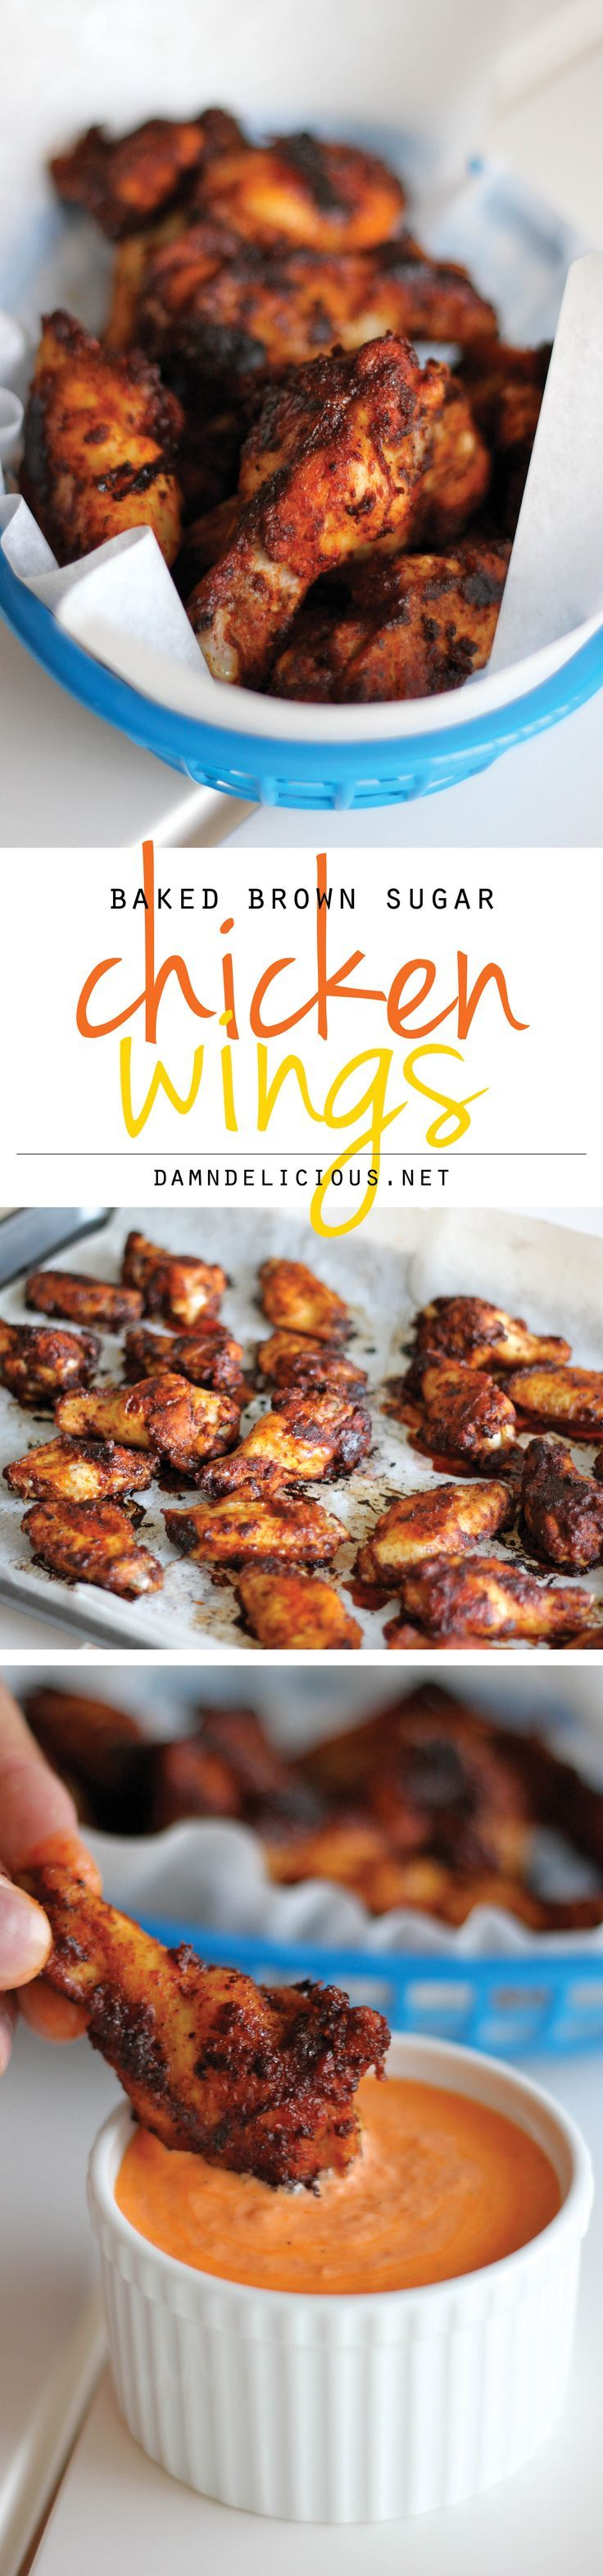 Baked Brown Sugar Chicken Wings with Roasted Red Pepper Cream Sauce